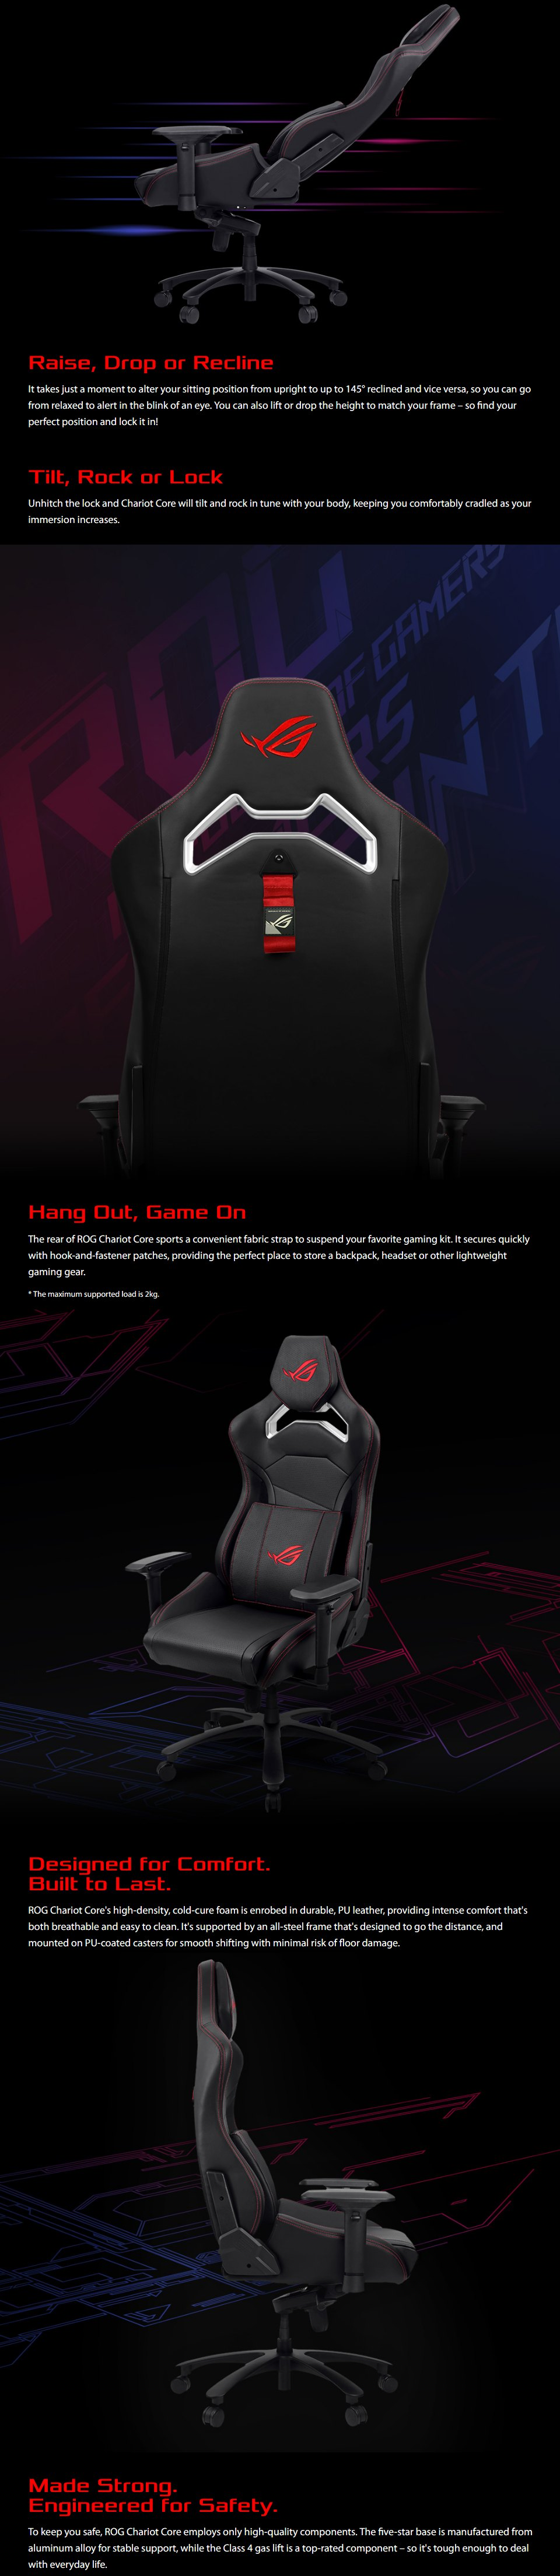 ASUS ROG Chariot Core Gaming Chair features 2